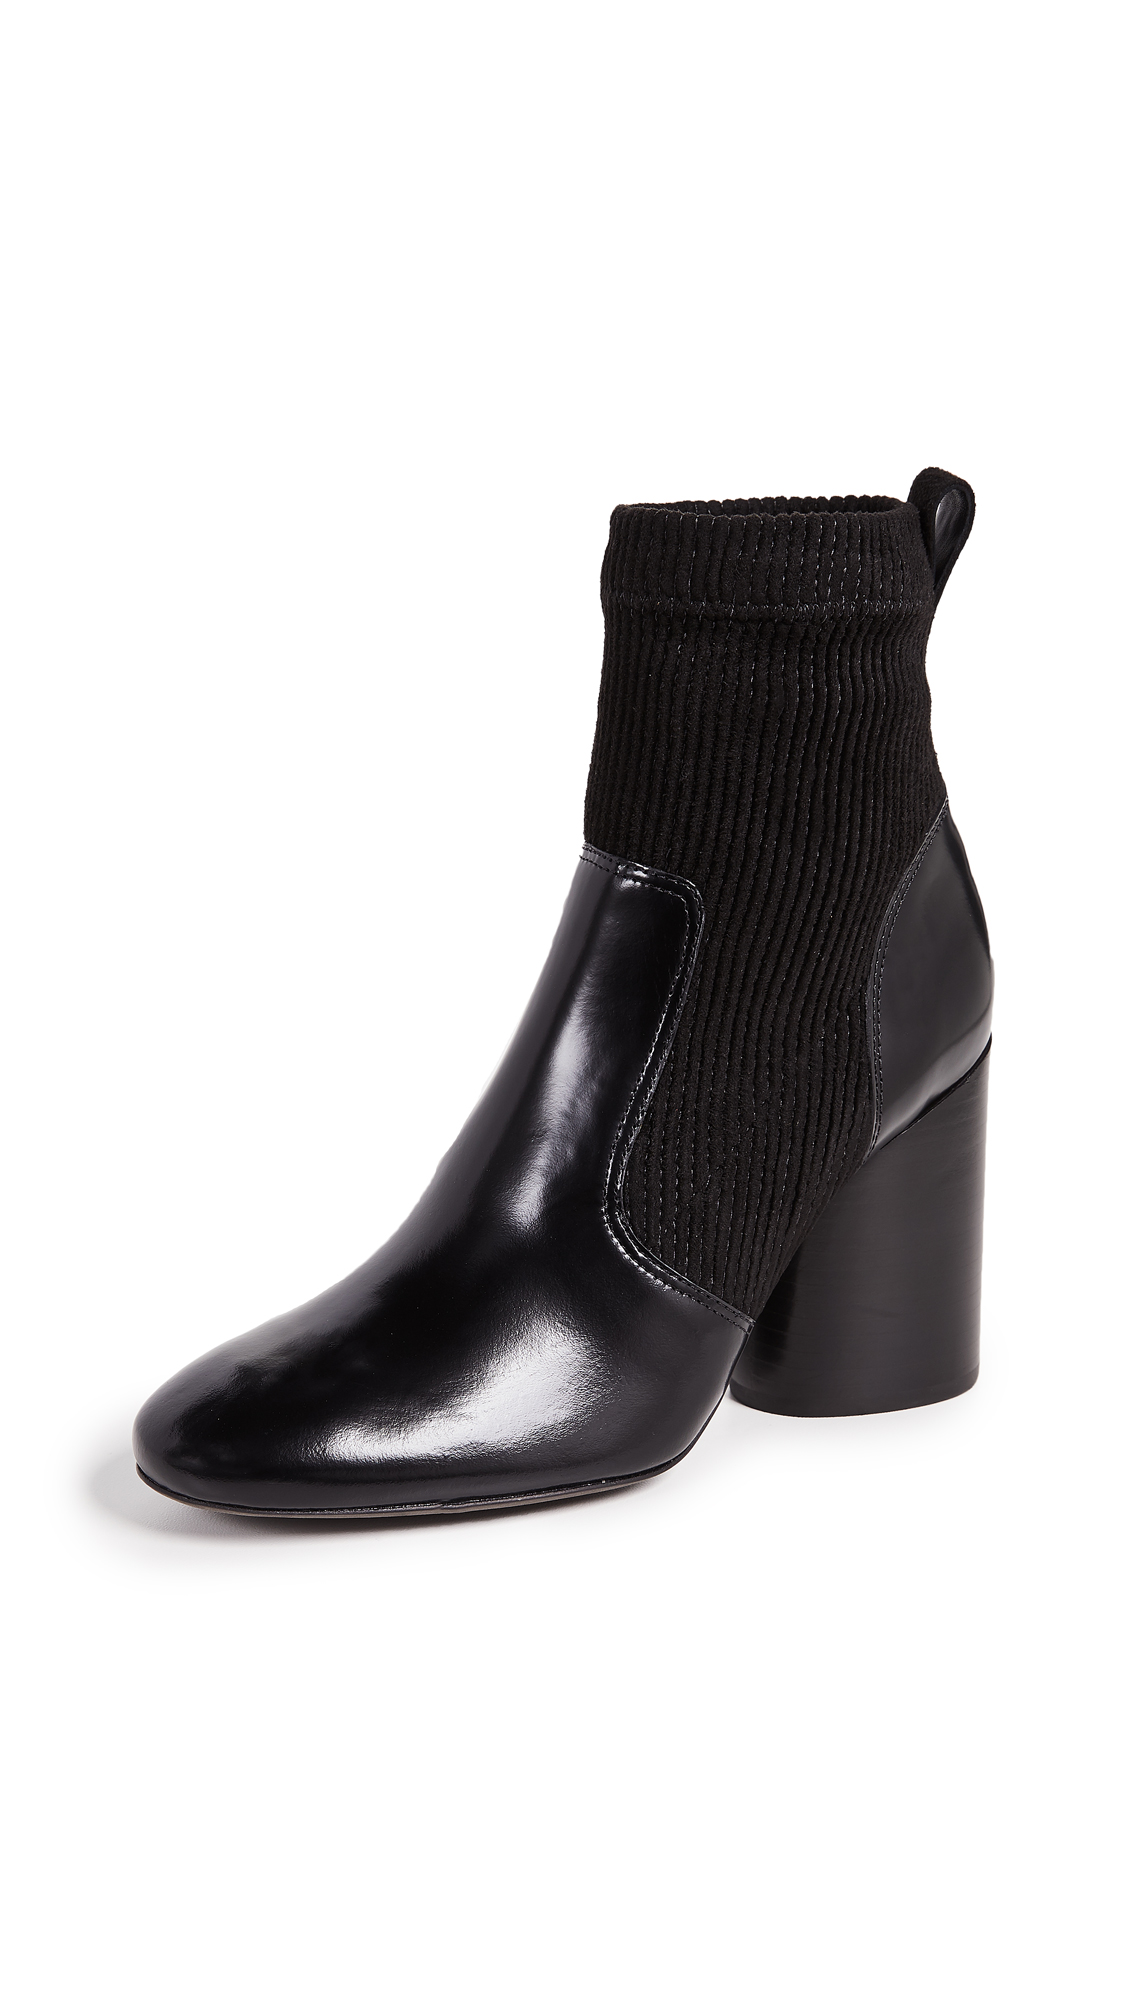 Tory Burch Rowen Booties - Perfect Black